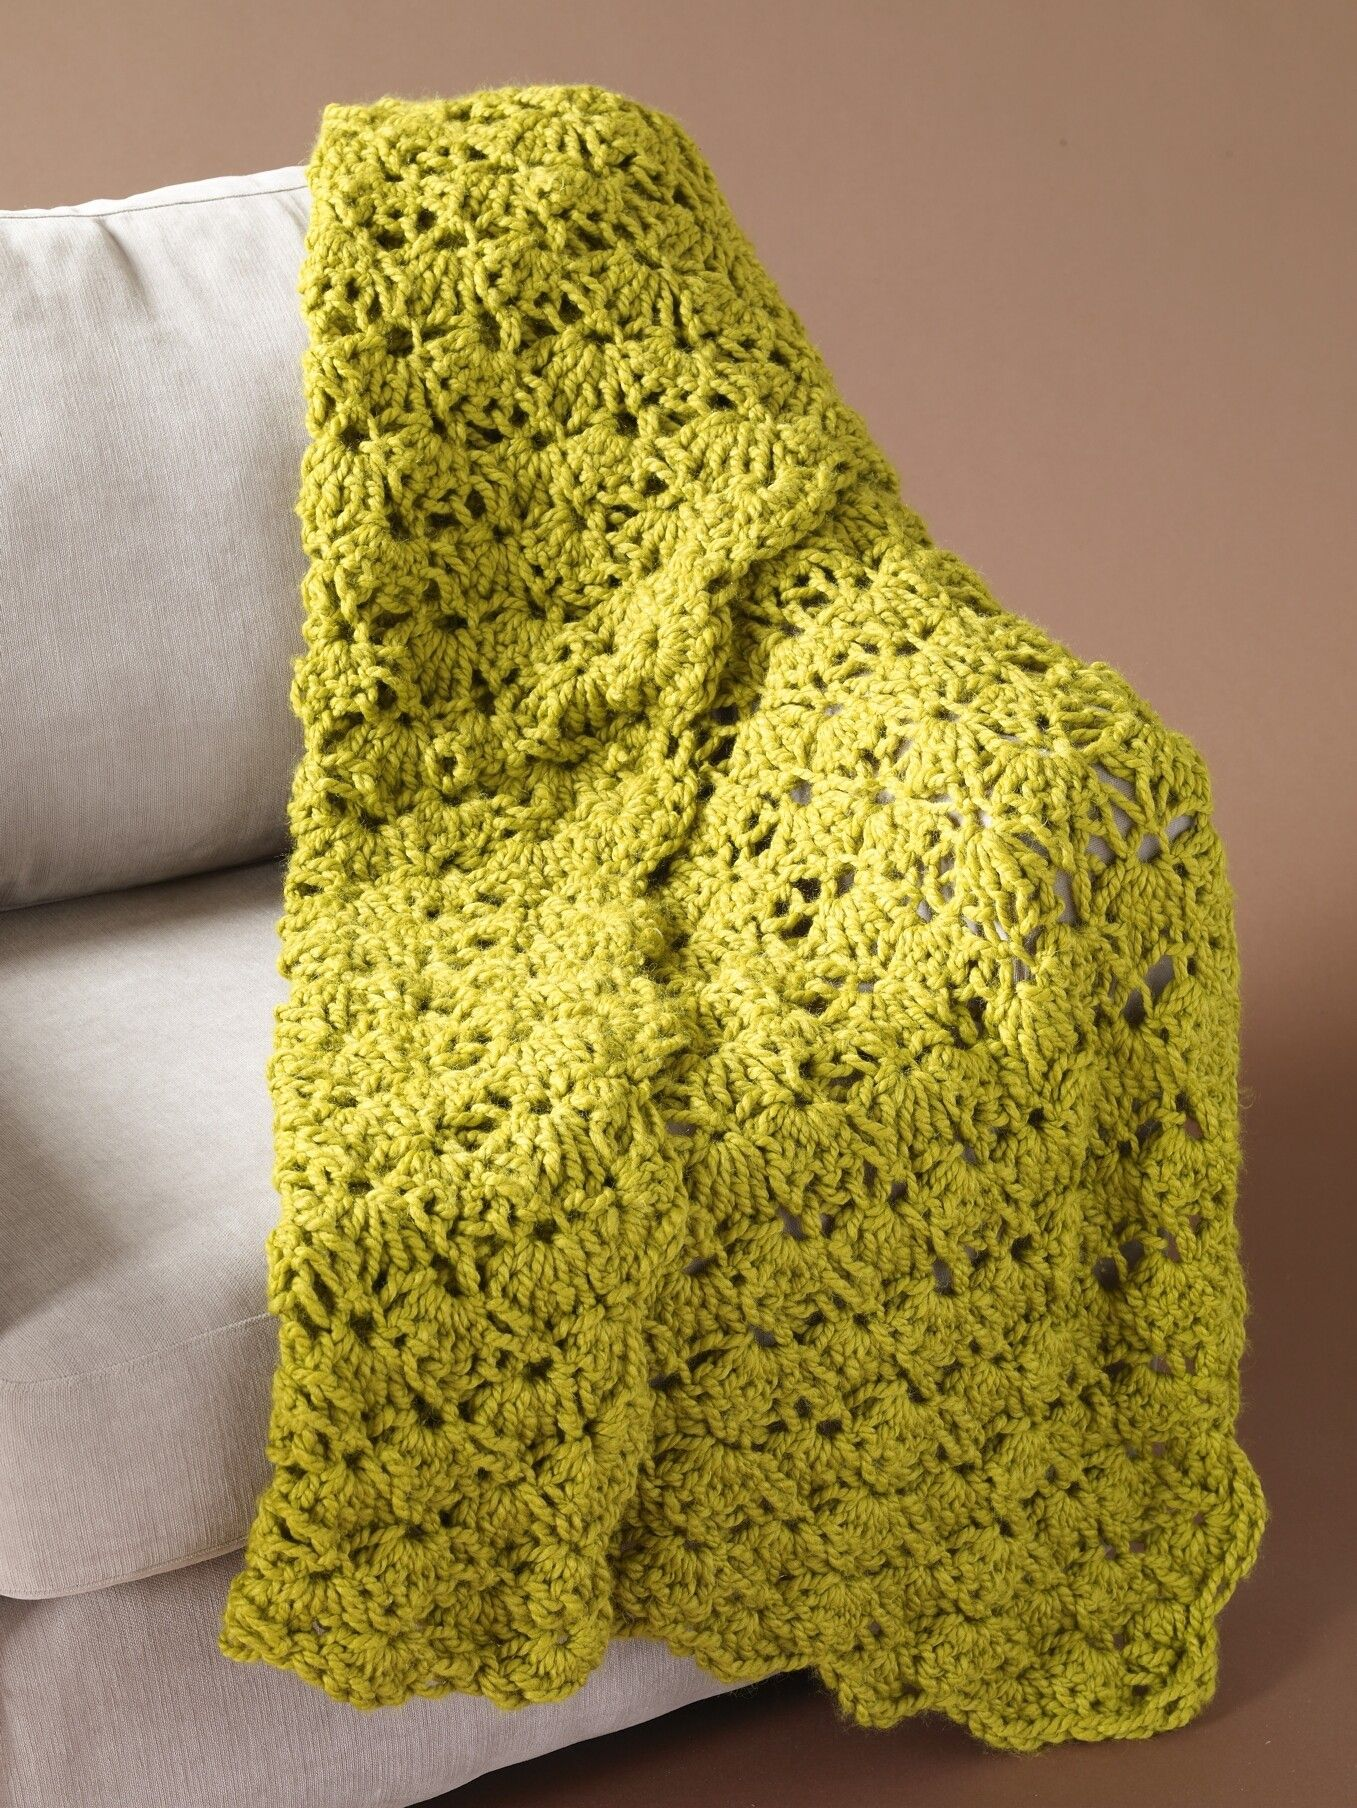 Speed Hook Shell Afghan Pattern (Crochet) | stitches | Pinterest